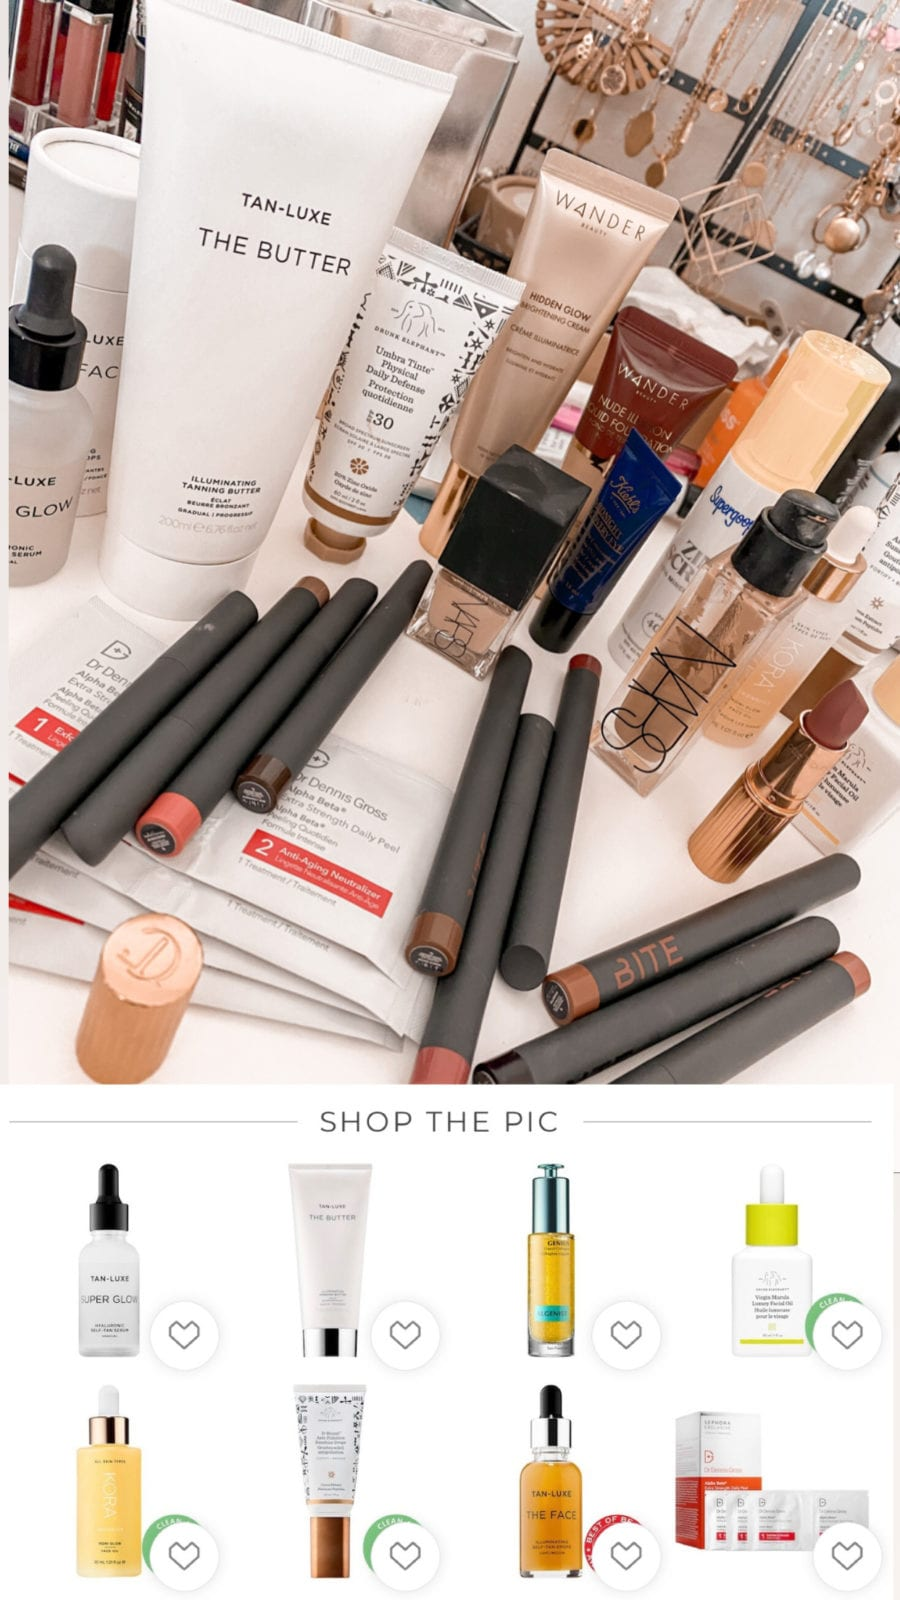 This is a flat lay of Adaleta Avdic's favorite Sephora products, while also including a screenshot from LikeToKnowIt.